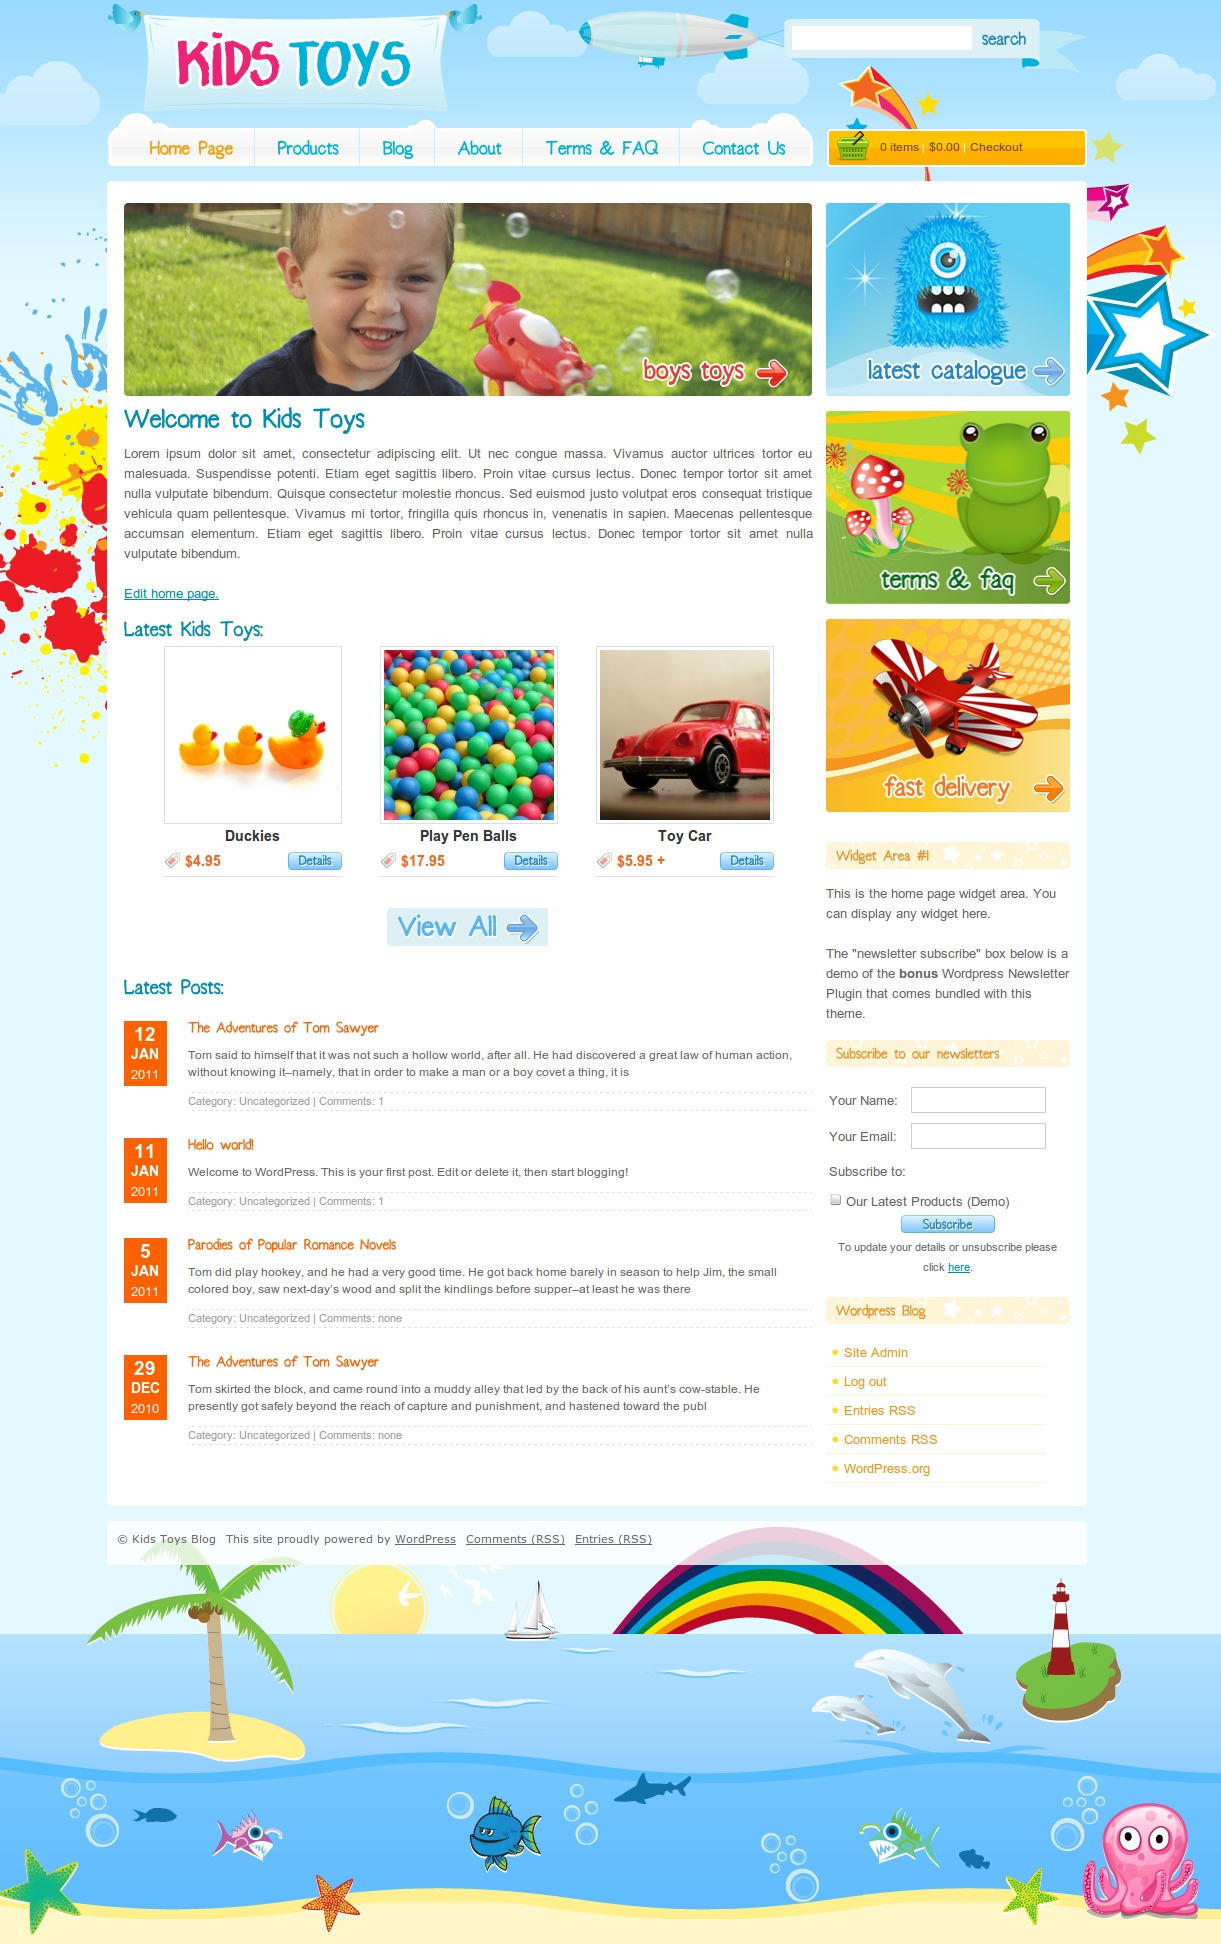 Kids Toys - WordPress Shop Theme - Full screenshot of the home page.